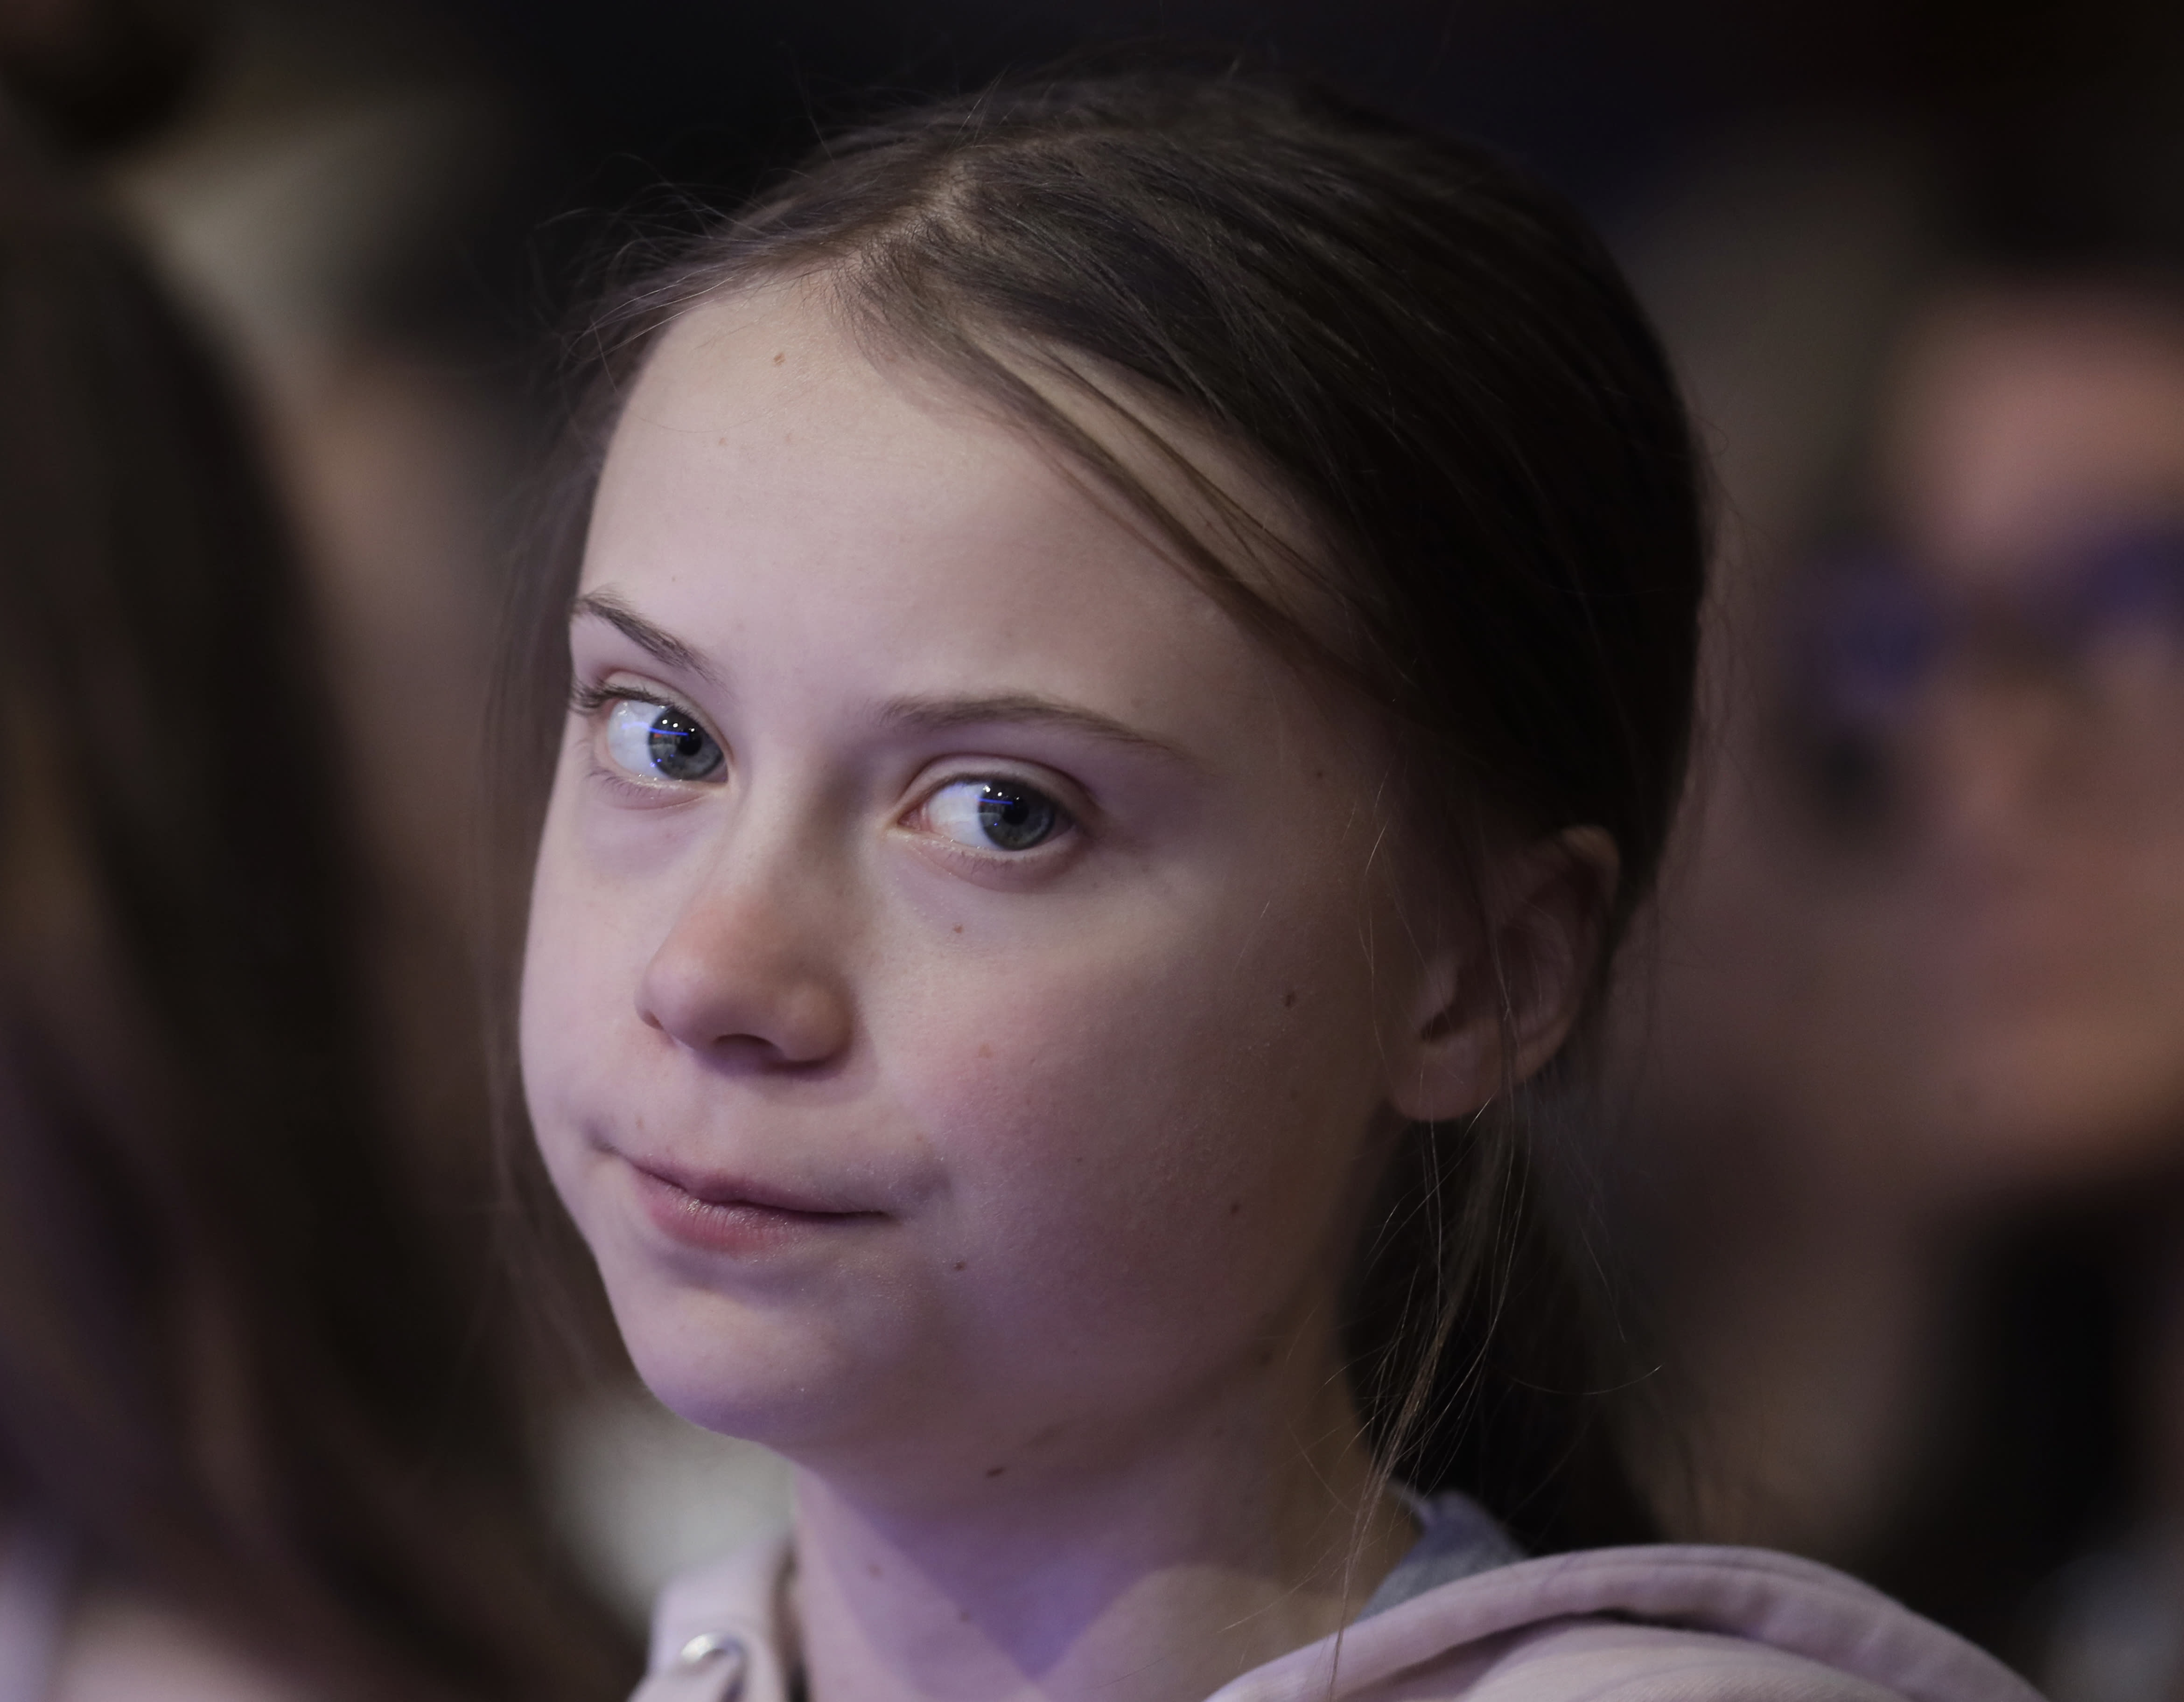 Greta Thunberg's Davos message 'should be a real wake-up call,' former Obama official says